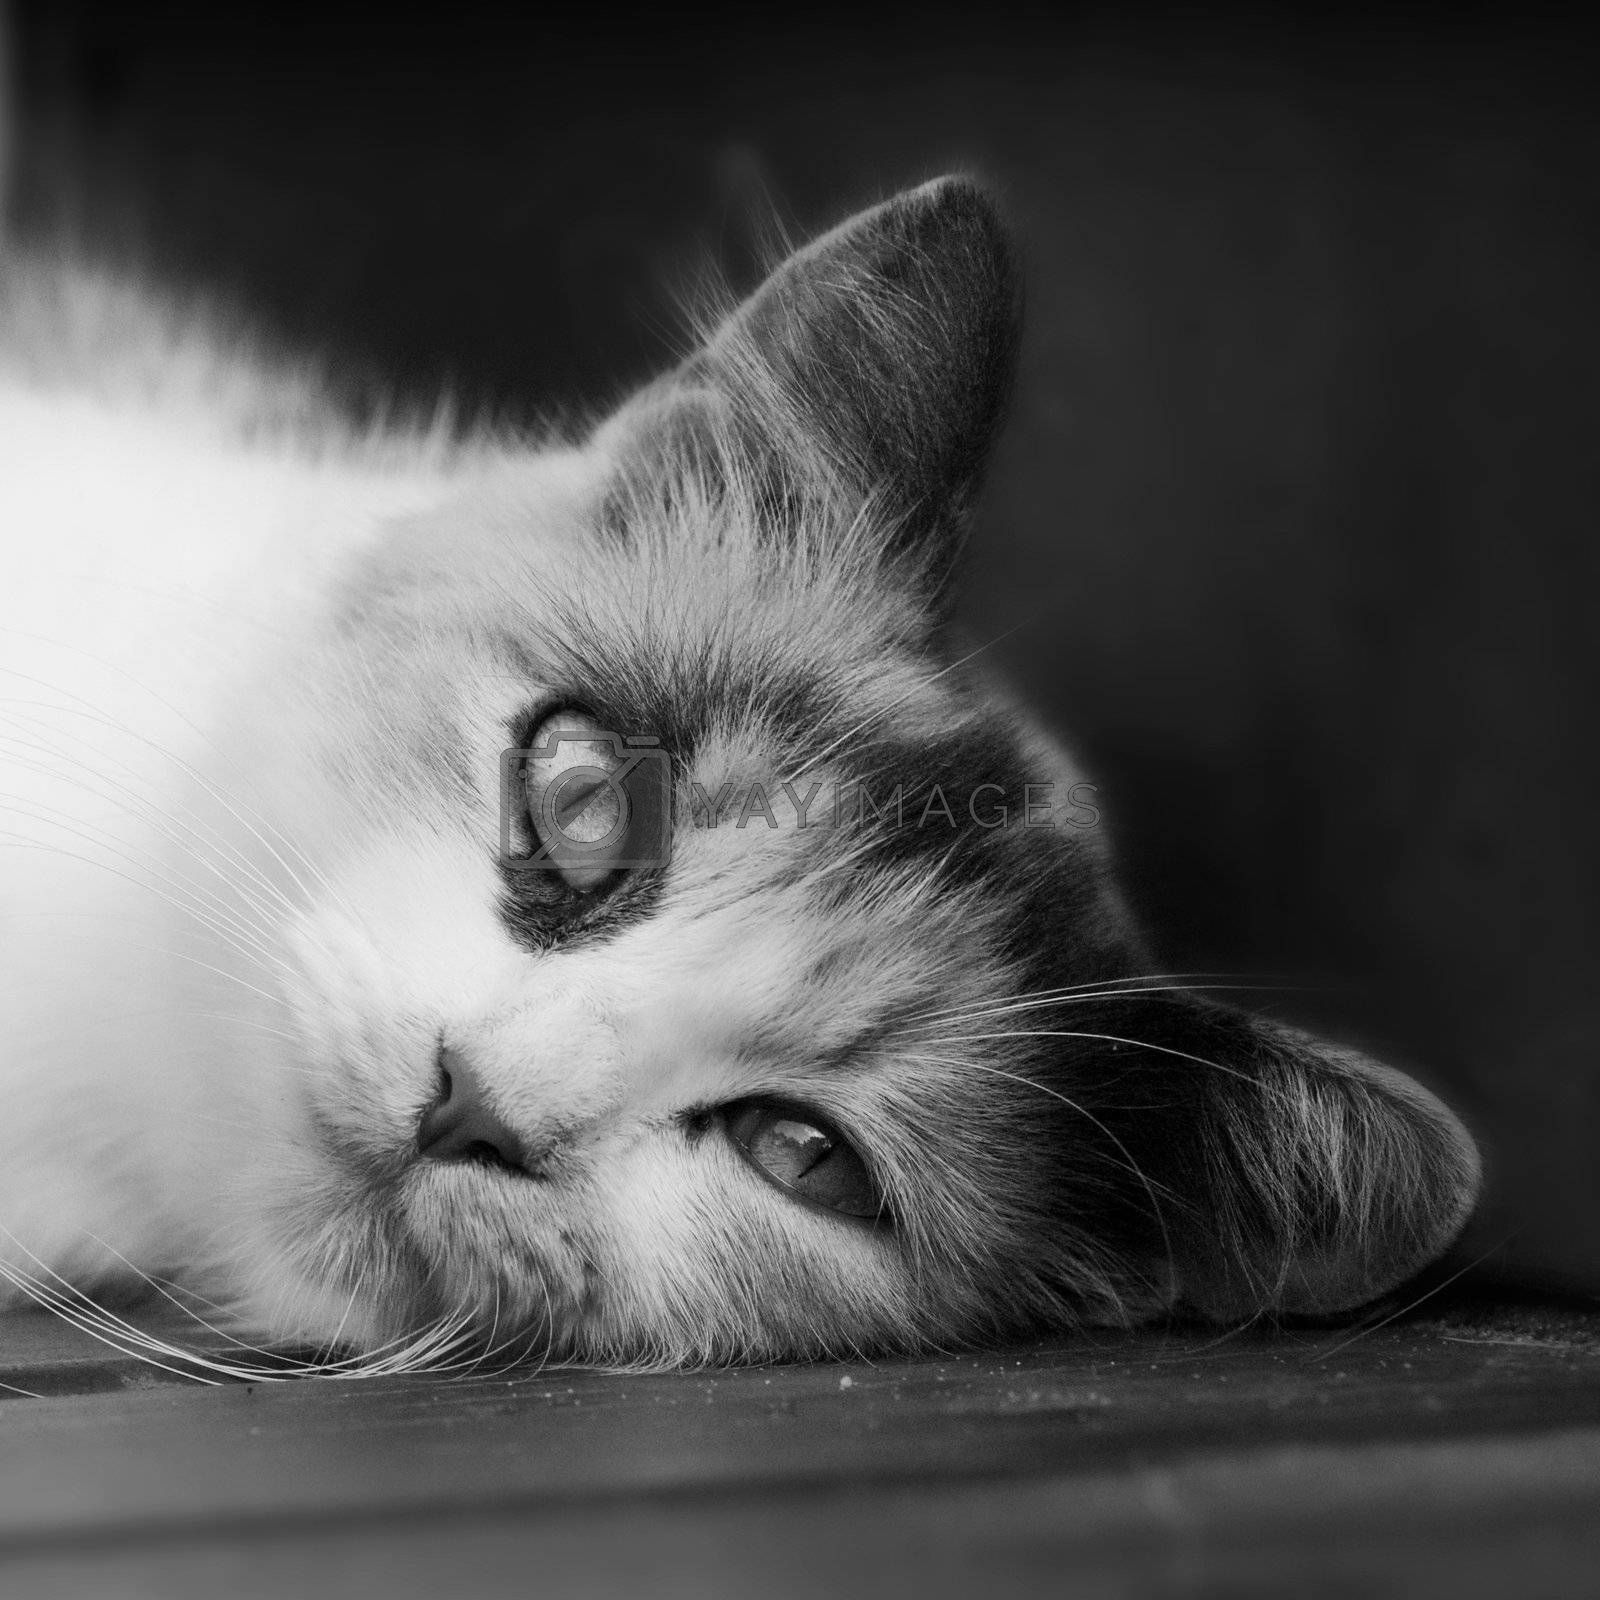 A black and white image of a calico cat lying its head on a deck.